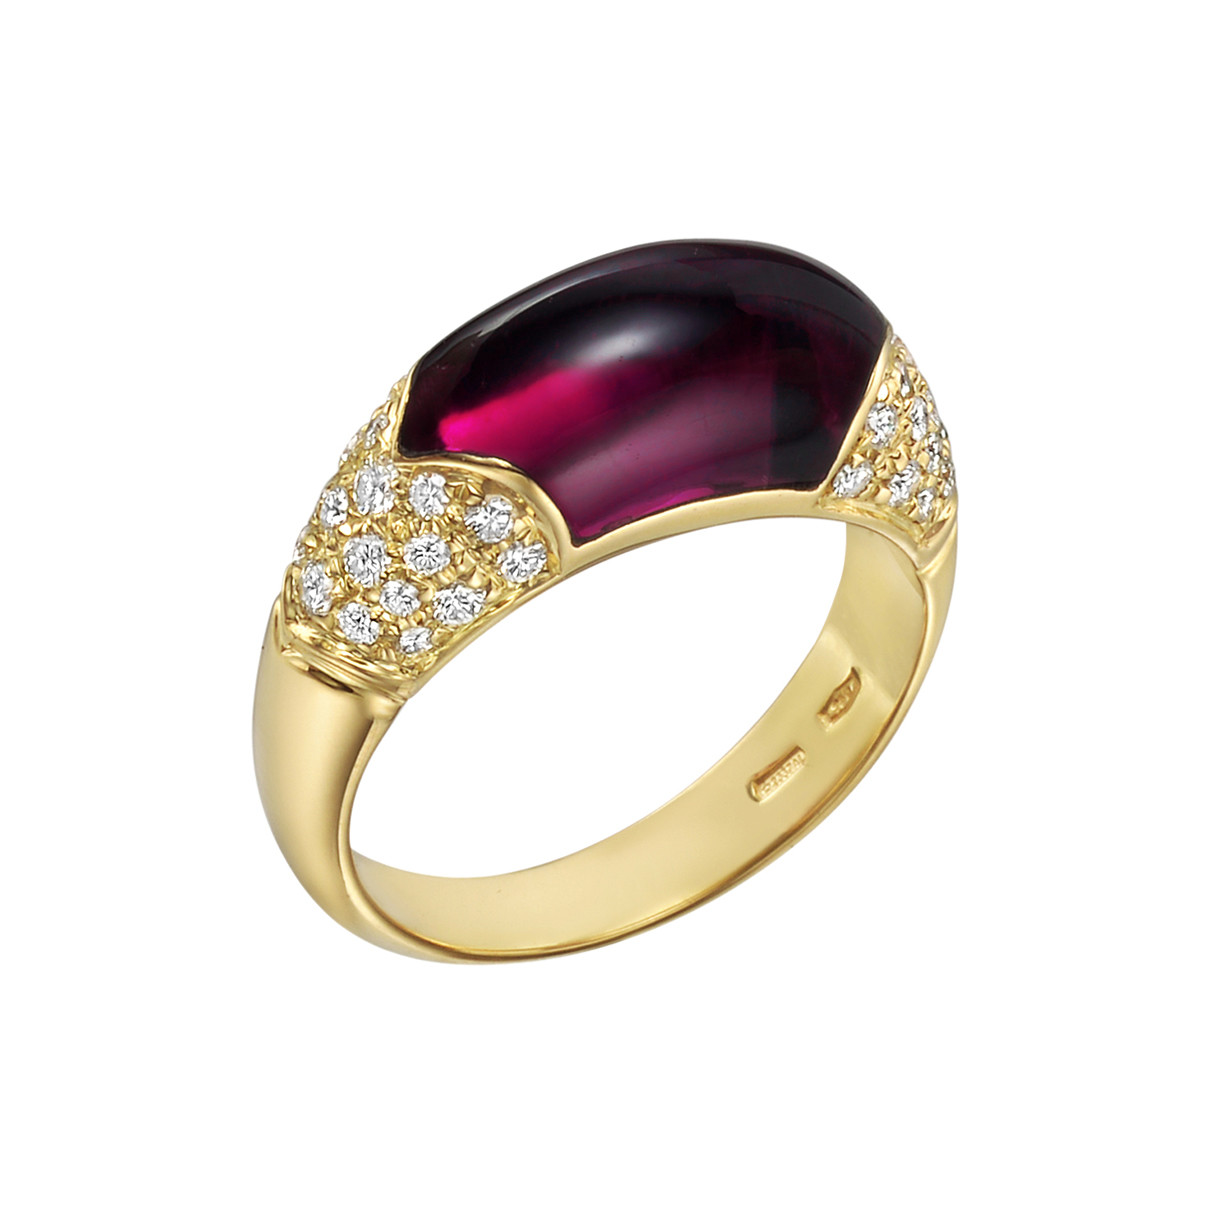 18k Yellow Gold, Rhodolite Garnet & Diamond Ring